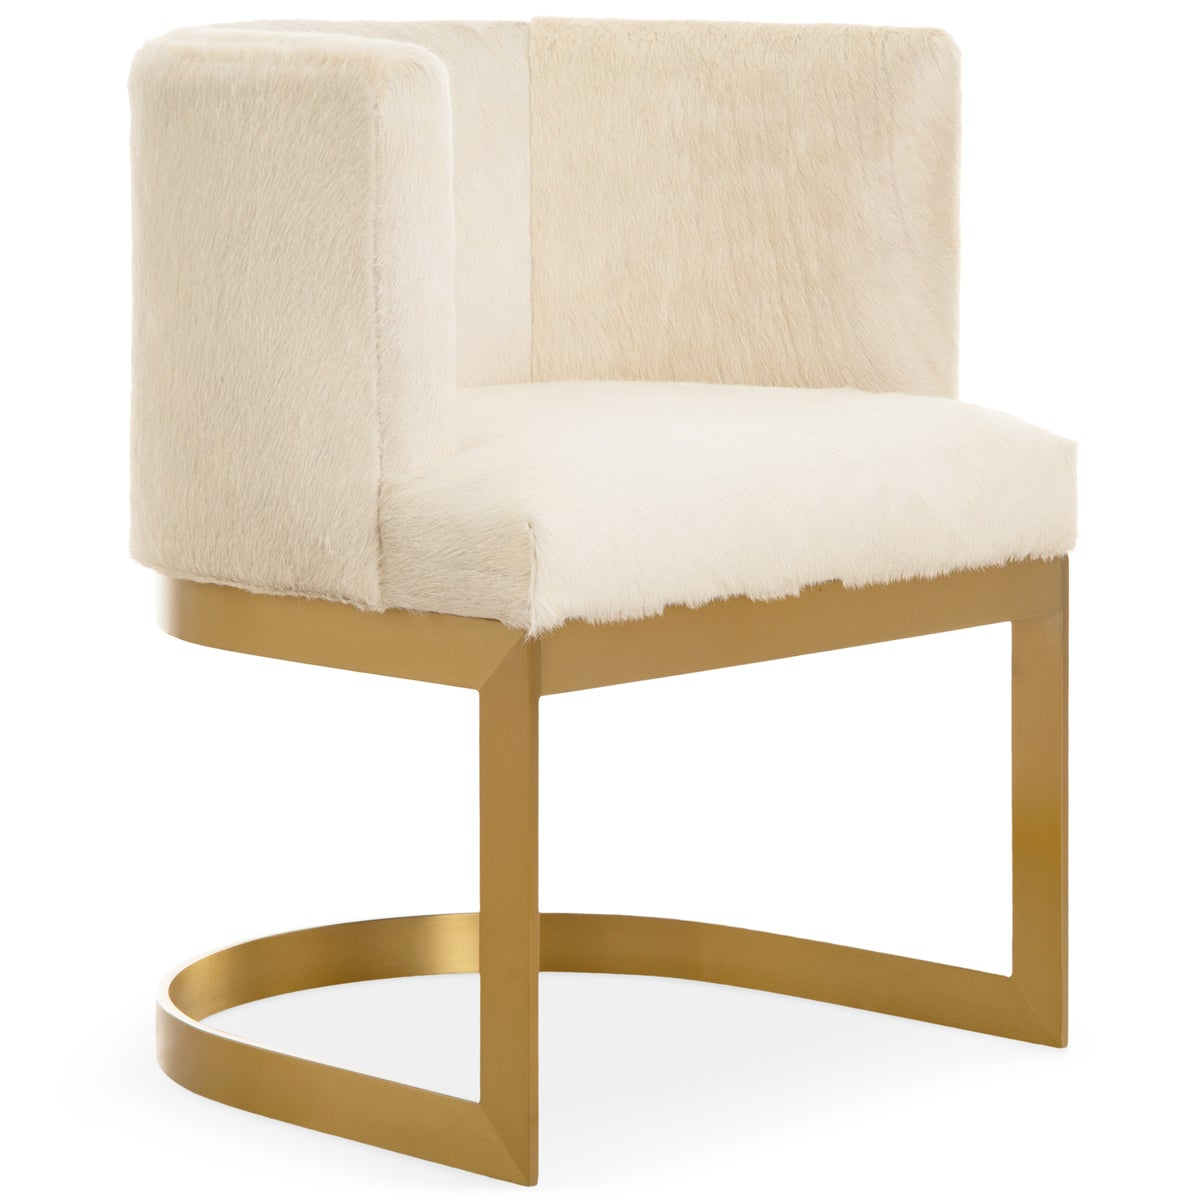 Ibiza Dining Chair in Brushed Brass and Cowhide - ModShop1.com